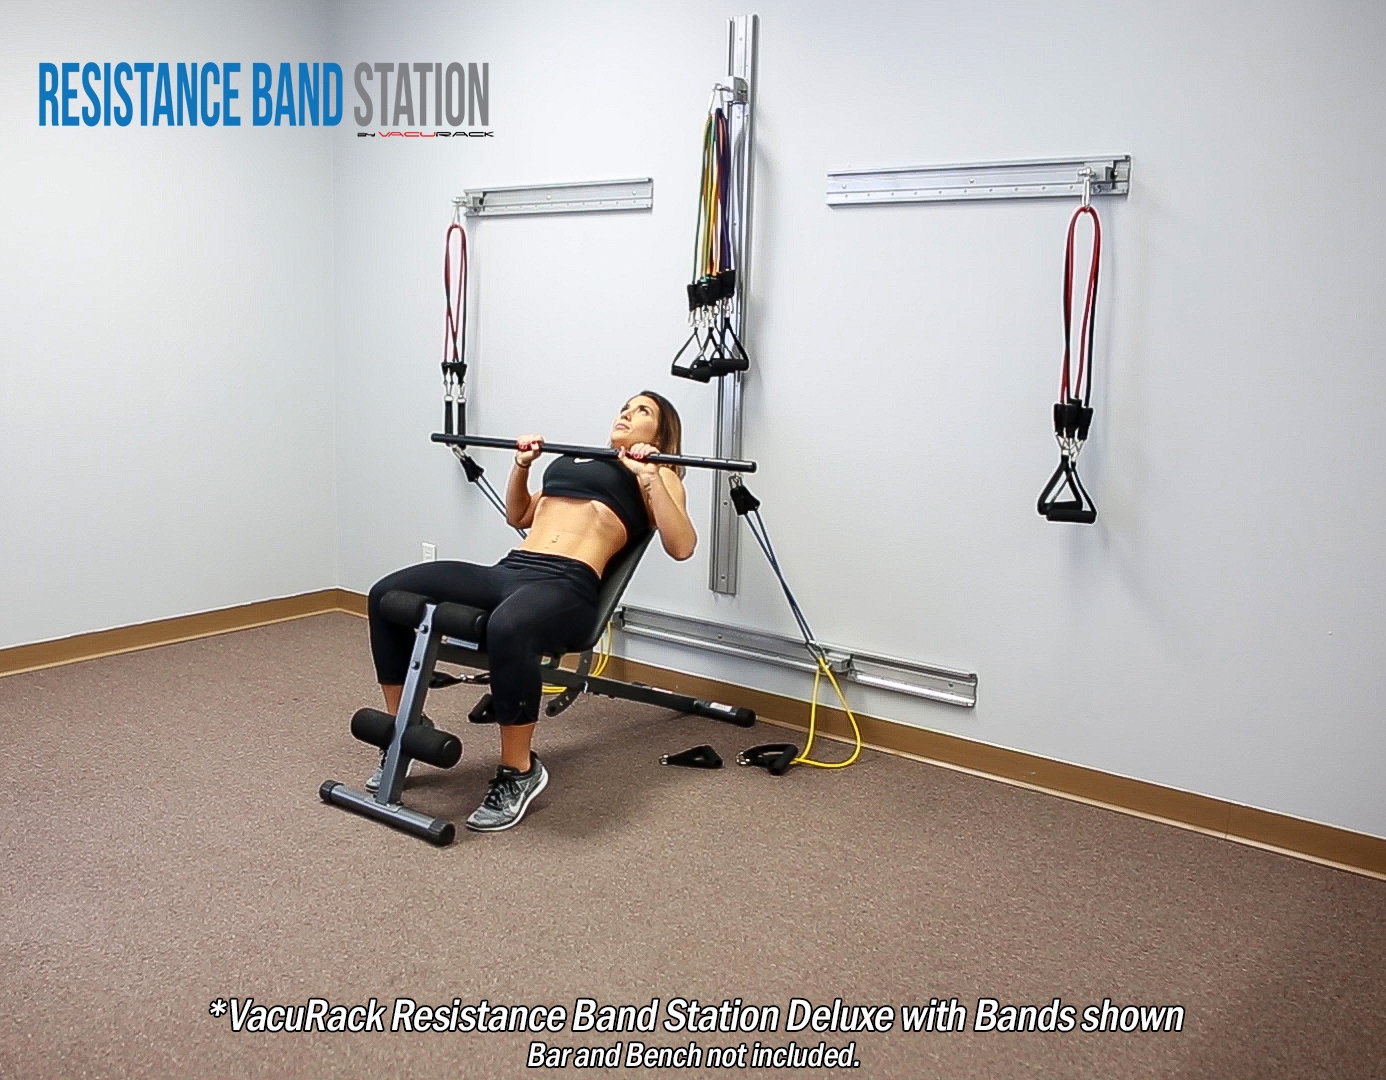 Vacurack Resistance Band Station Deluxe With Bands Vacurack